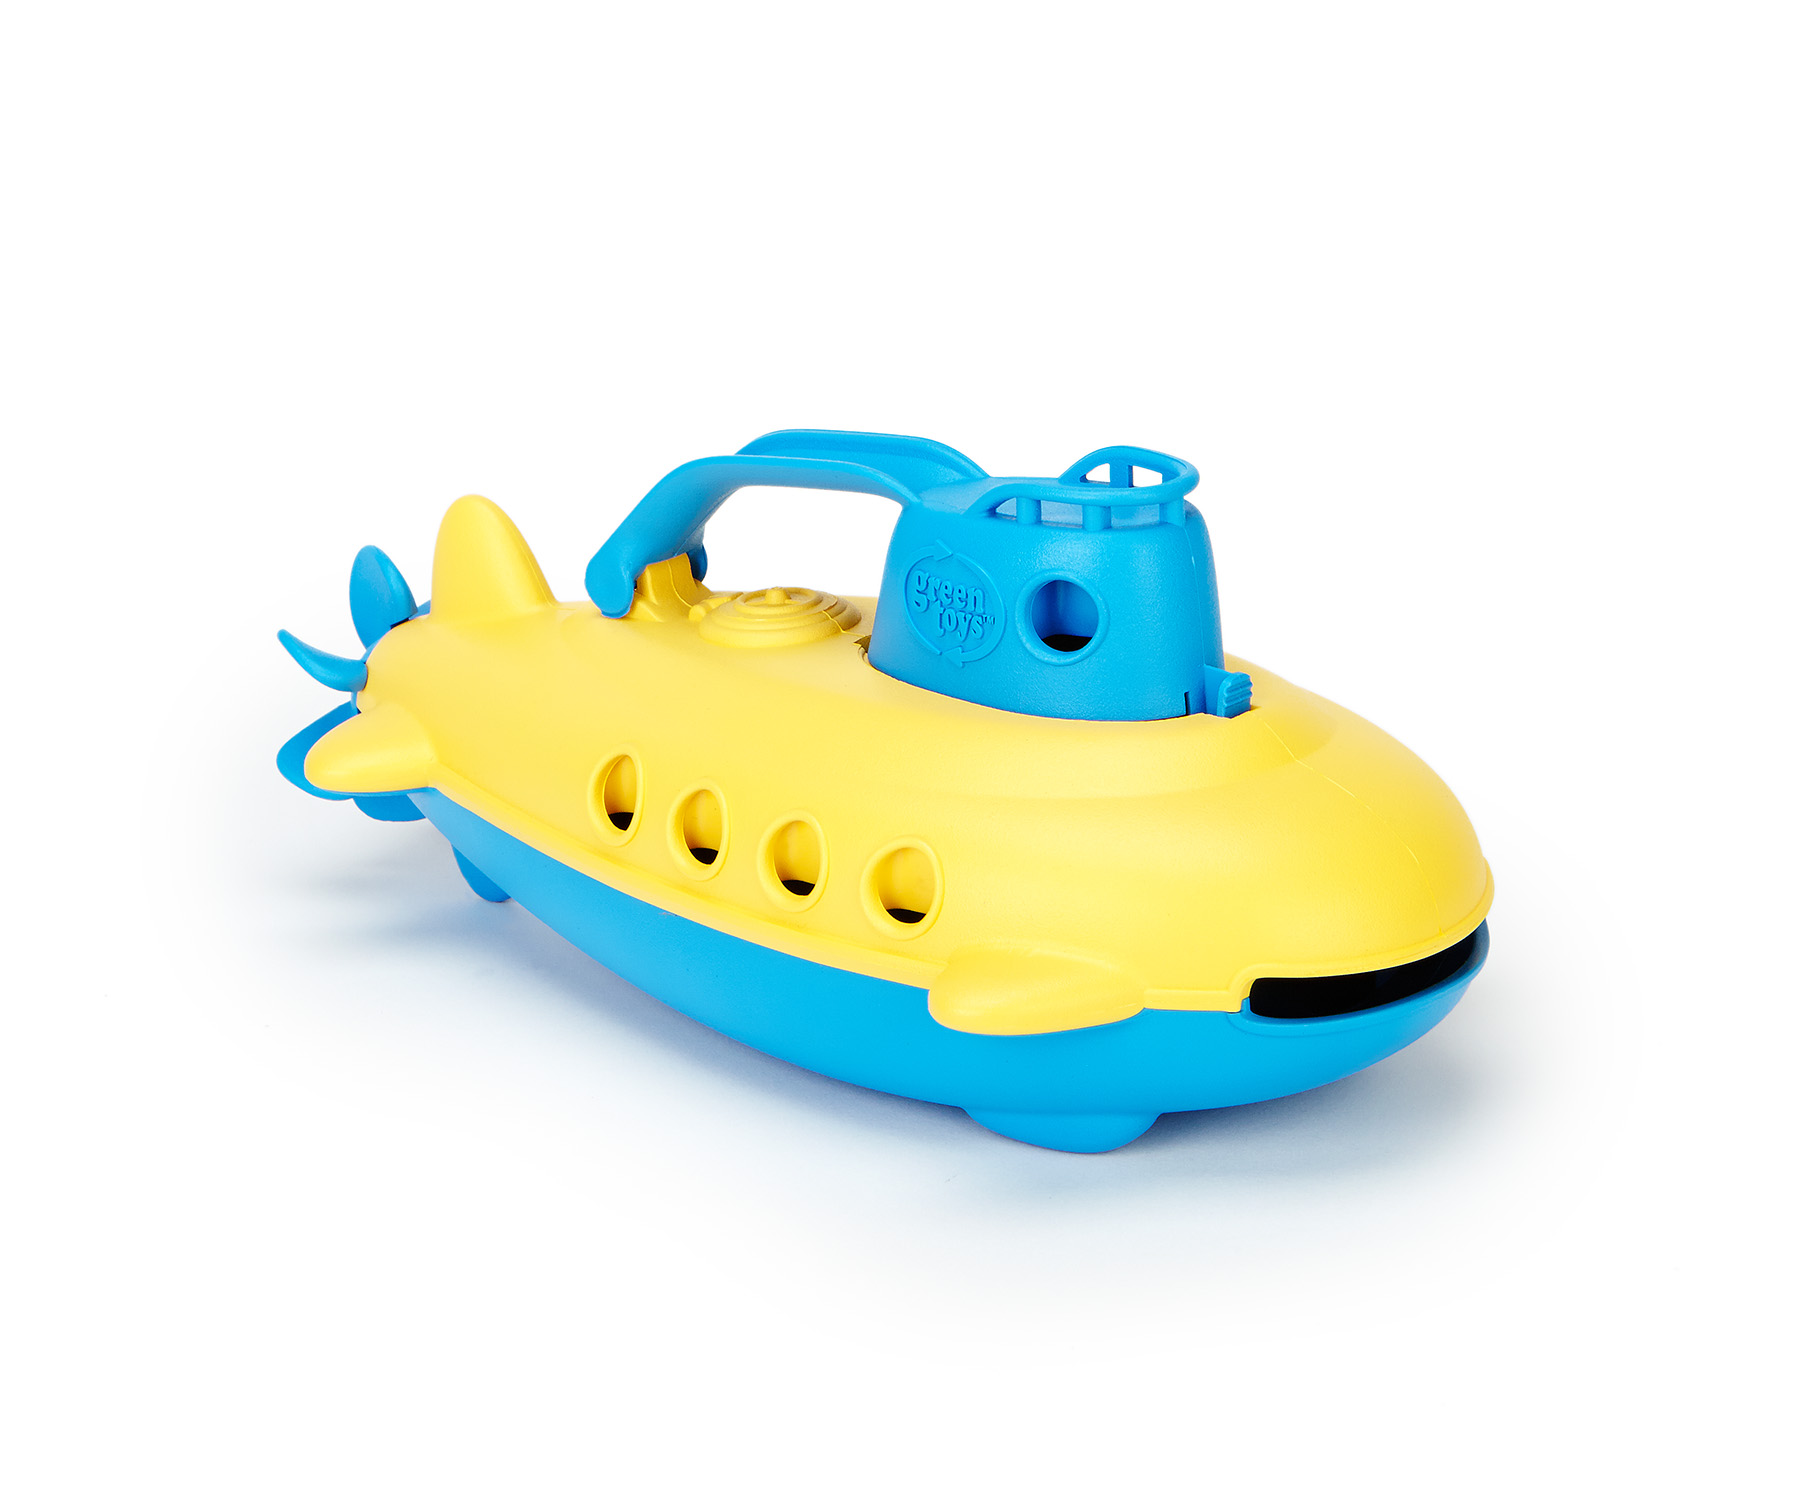 Green Toys Submarine Bath Toy, Blue Cabin by Green Toys